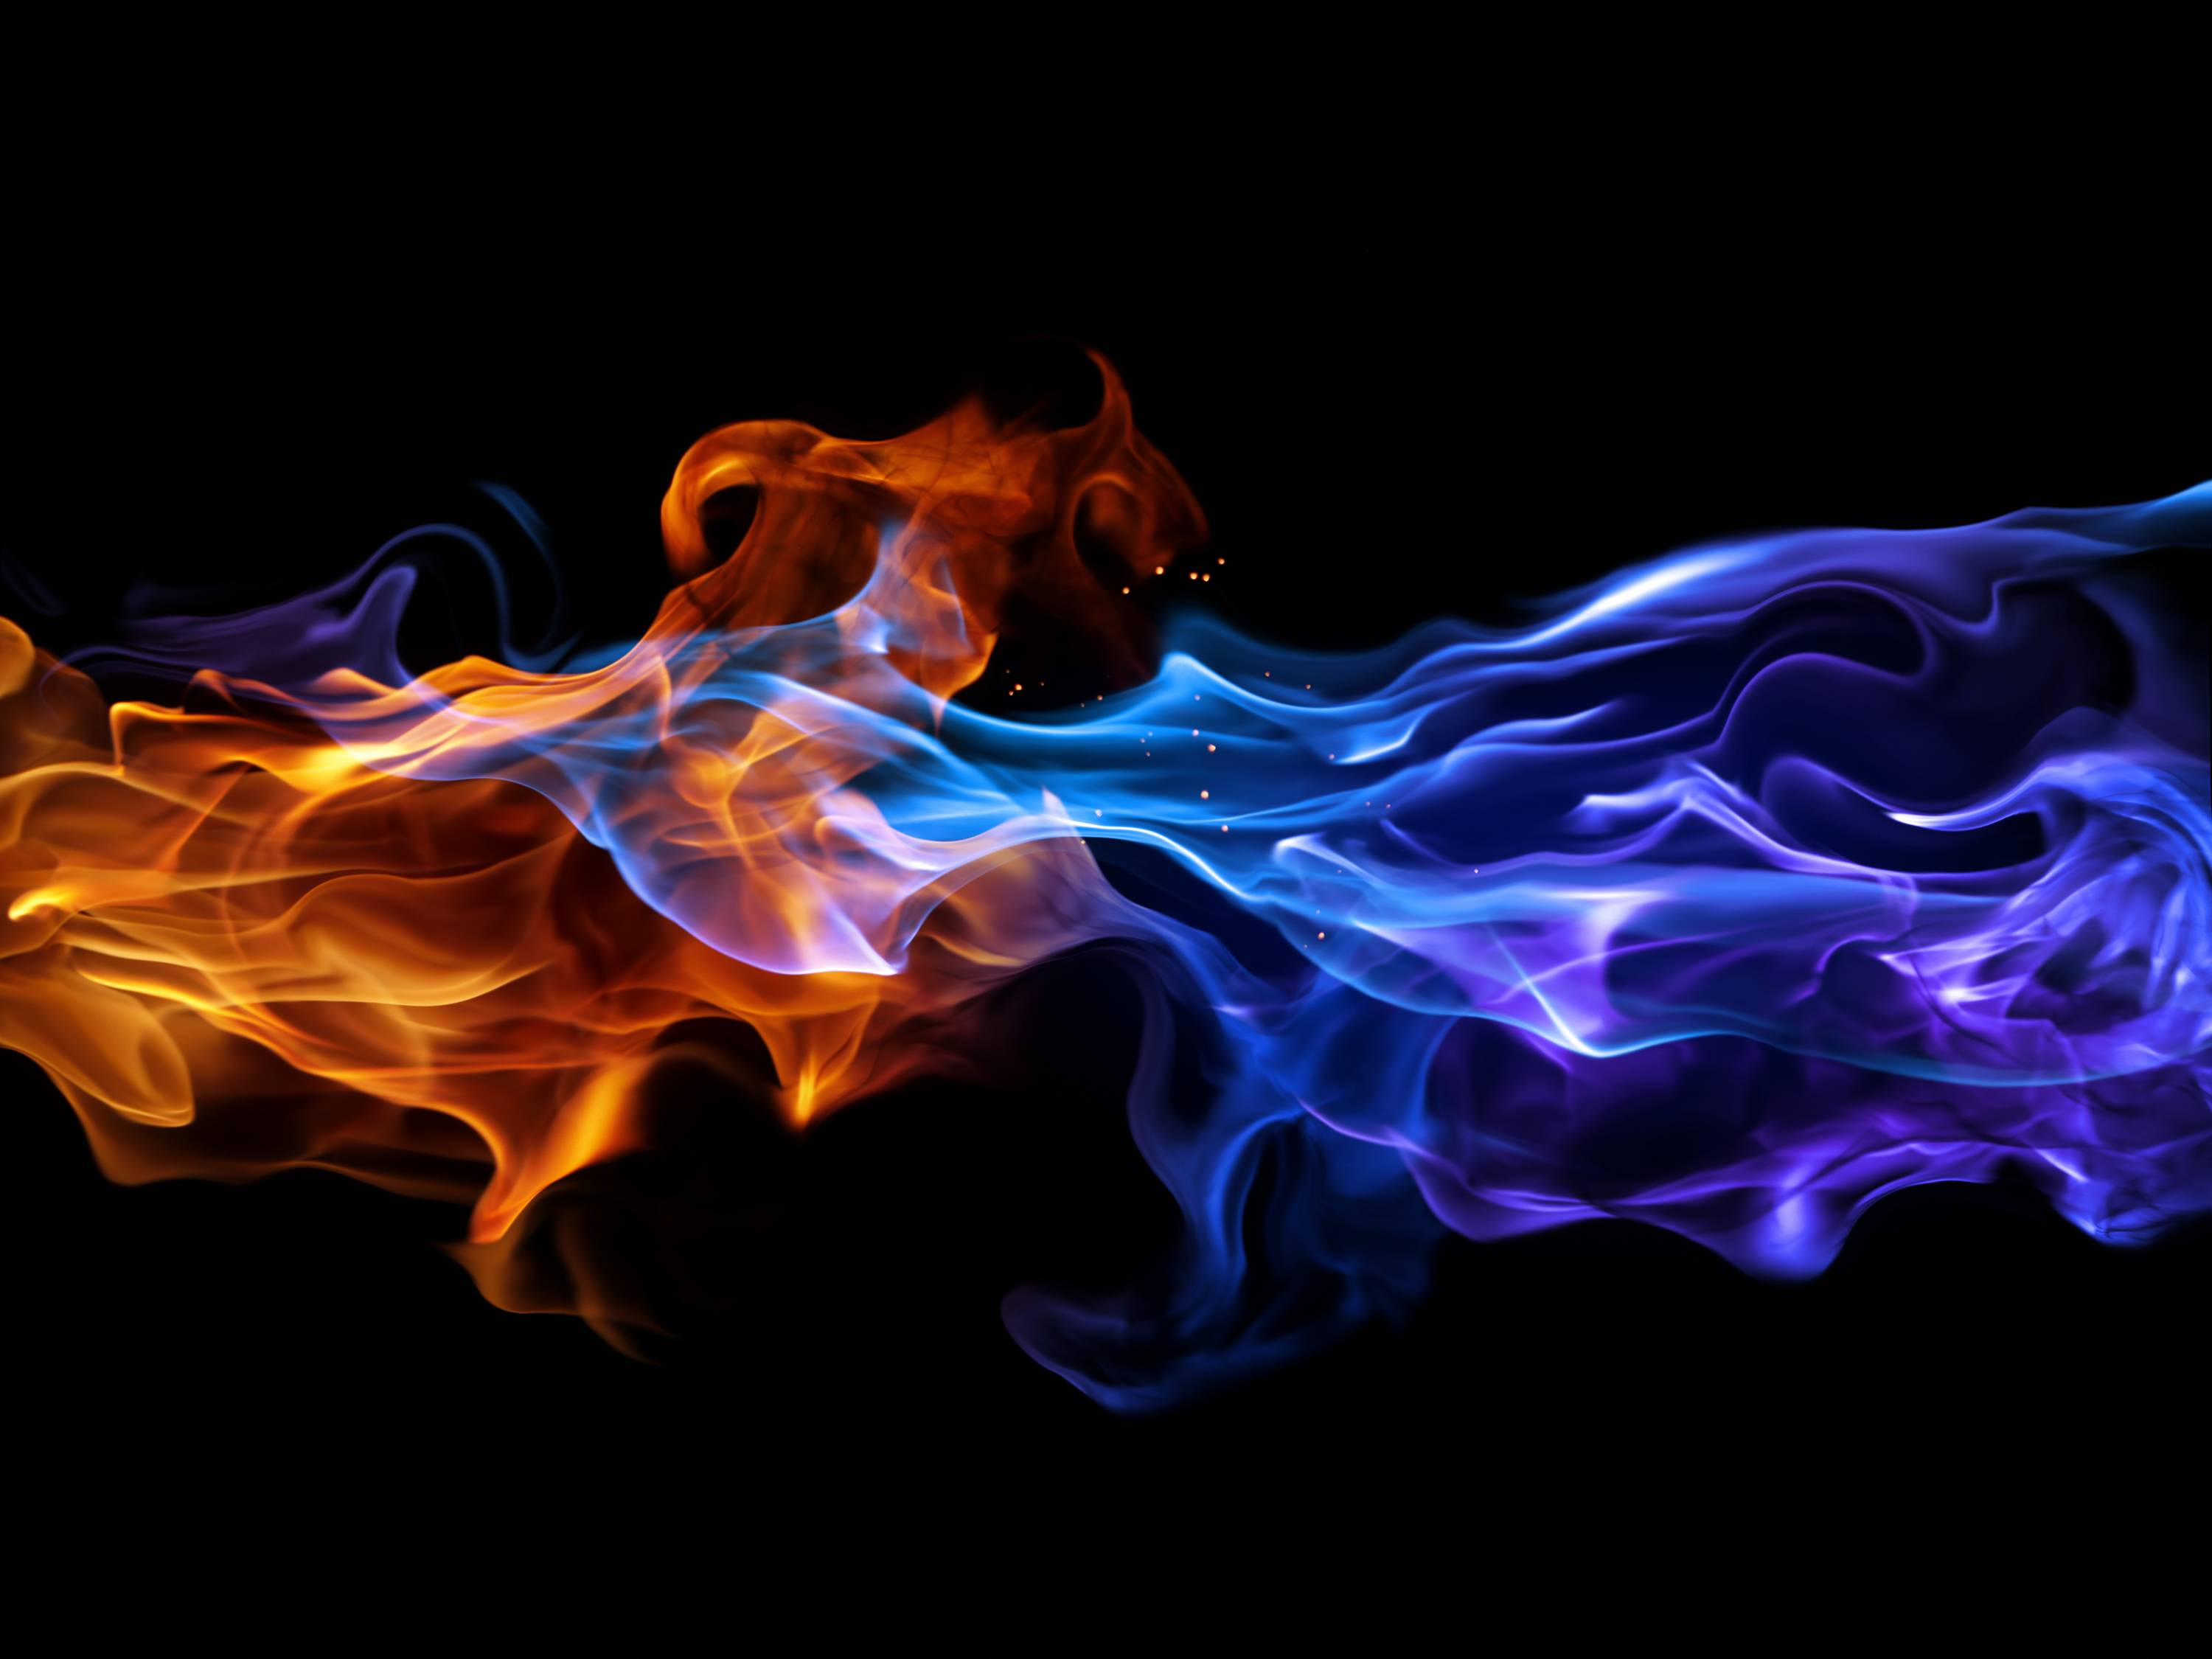 Blue fire wallpapers wallpaper cave blue fire abstract wallpapers thecheapjerseys Images